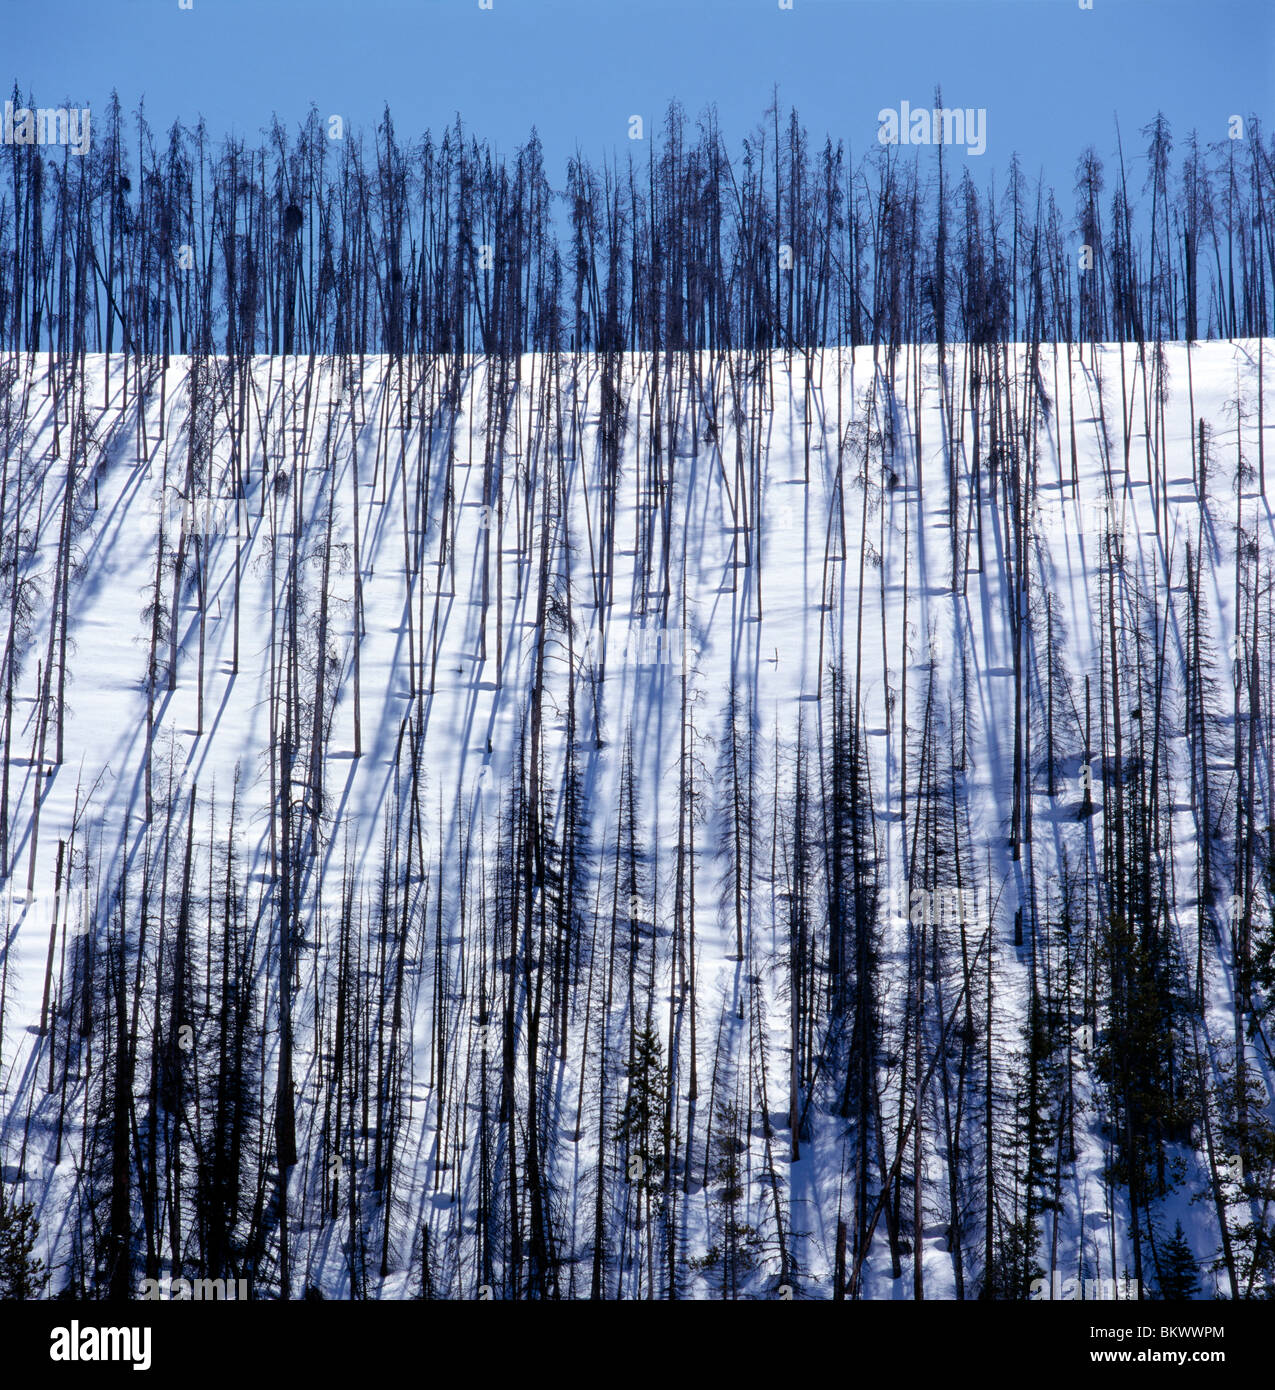 Burnt tree trunks create a pattern against the snow along Rt 287 near West Yellowstone, Yellowstone National Park, - Stock Image